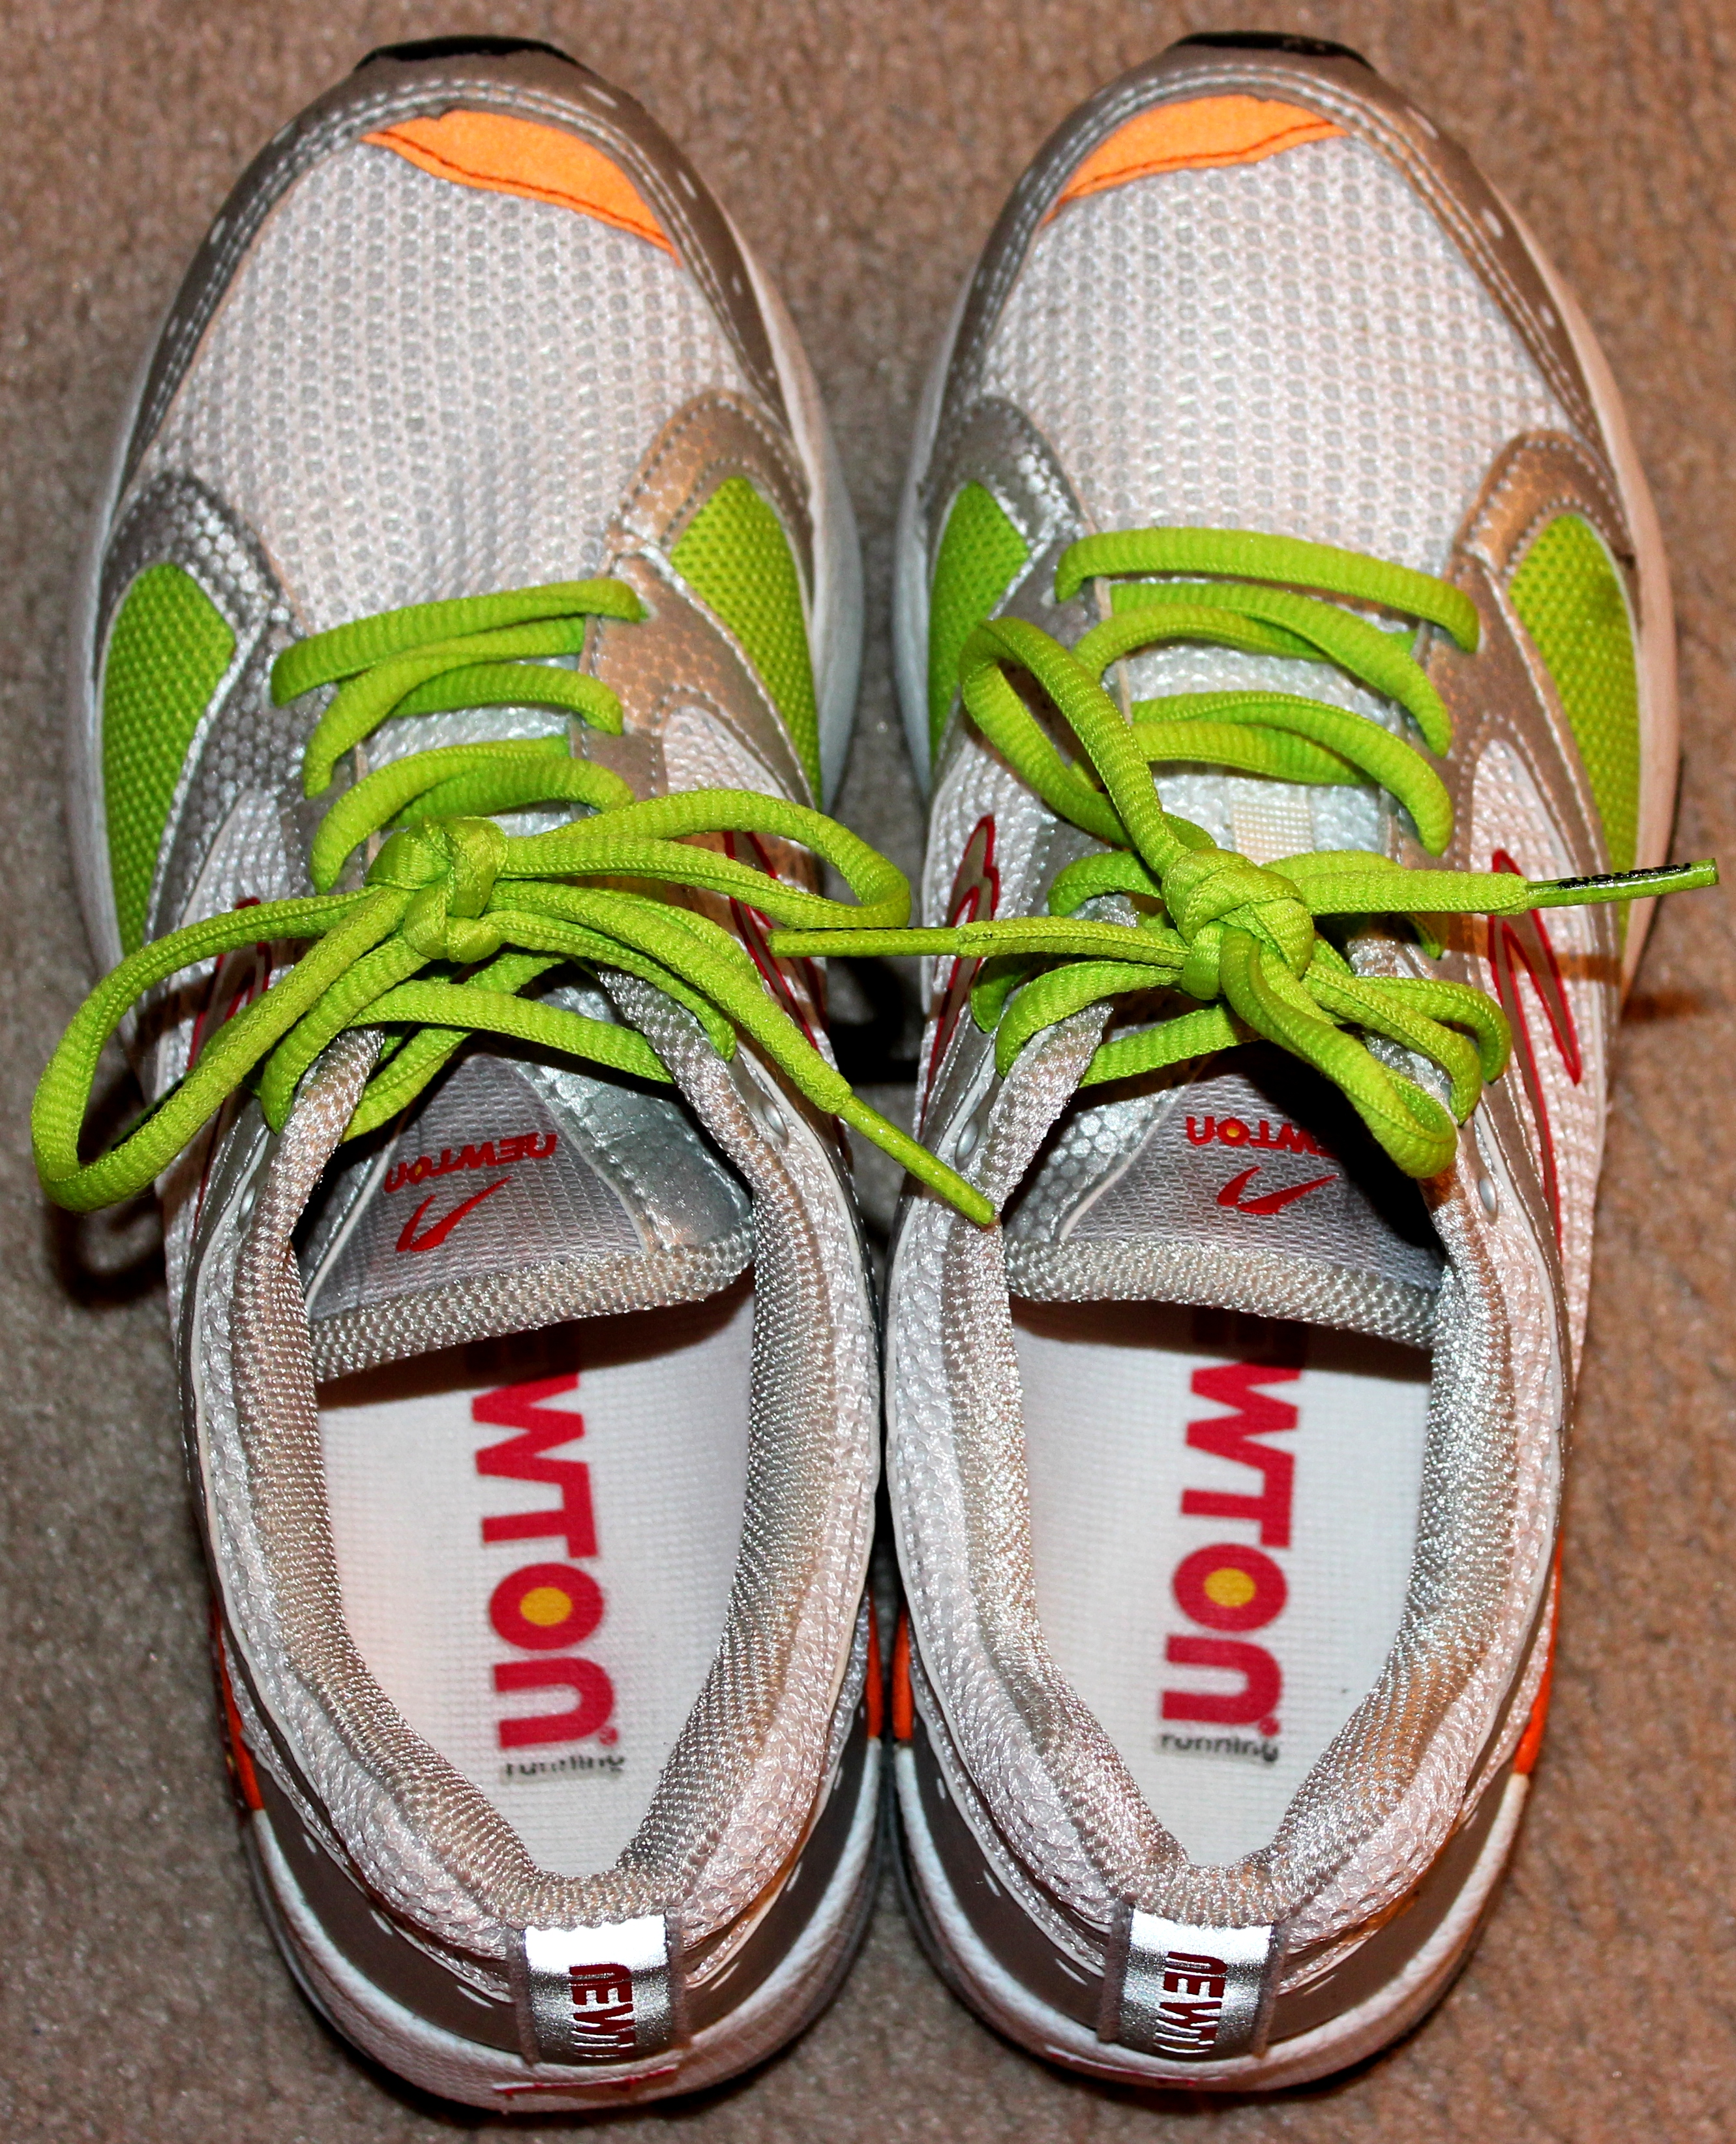 Do Running Shoes Really Cause Injuries